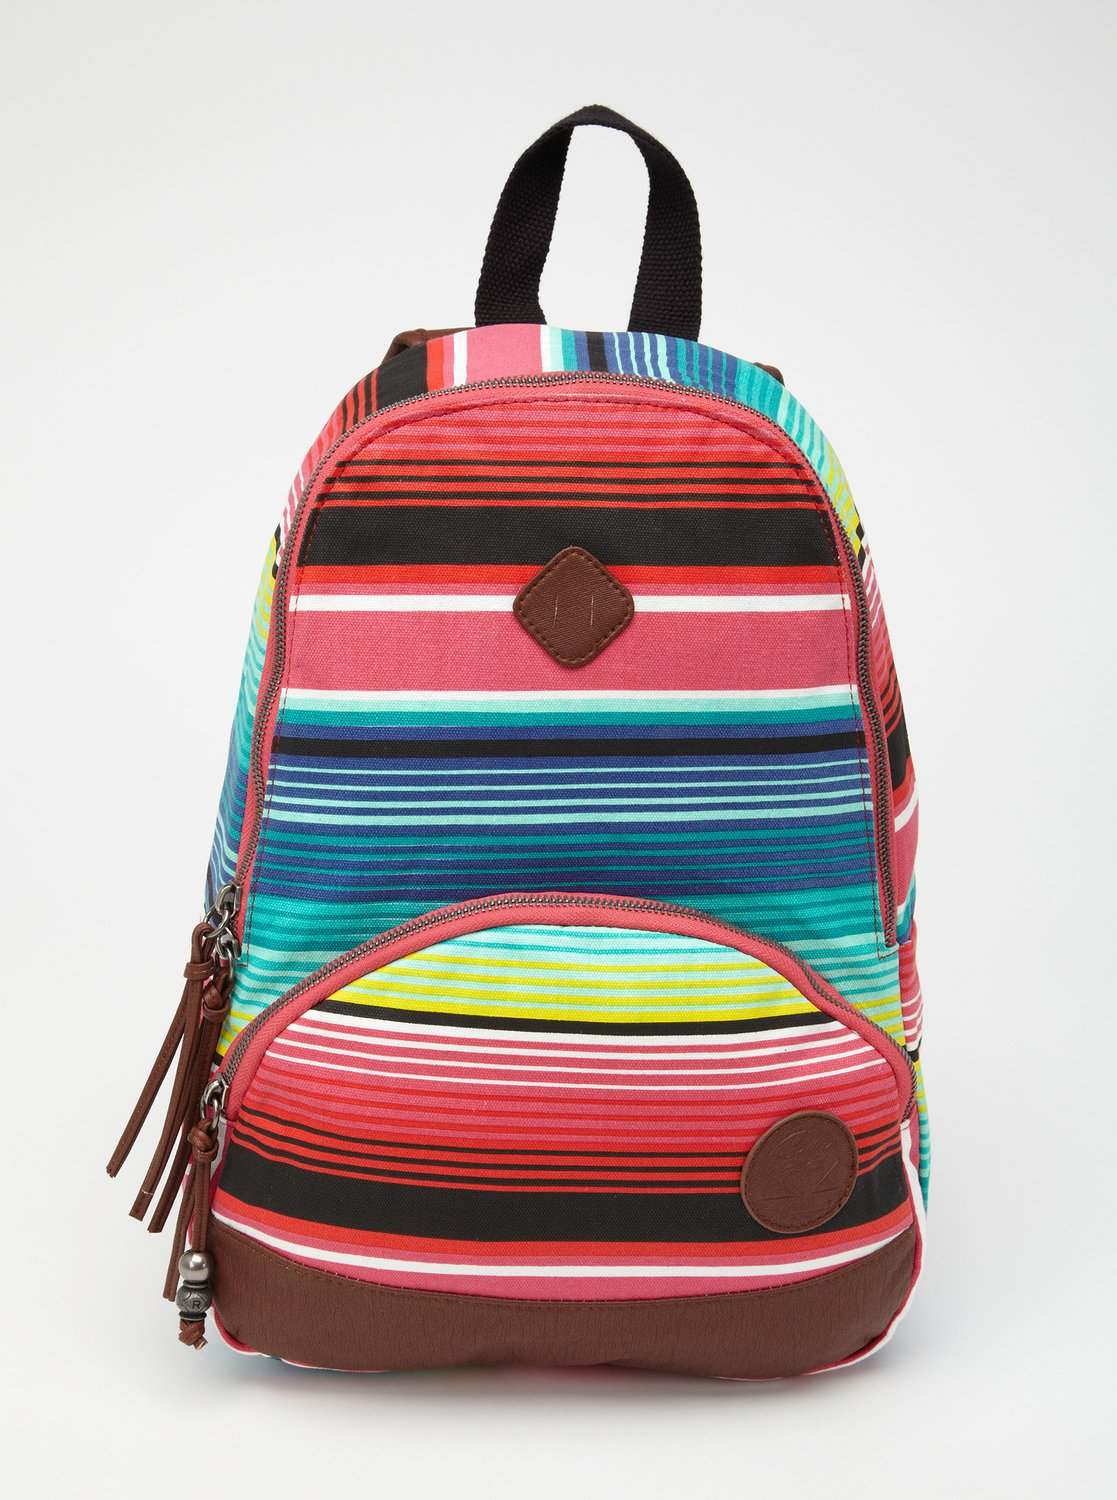 Wild Outdoors Mini Backpack 452O44 | Roxy